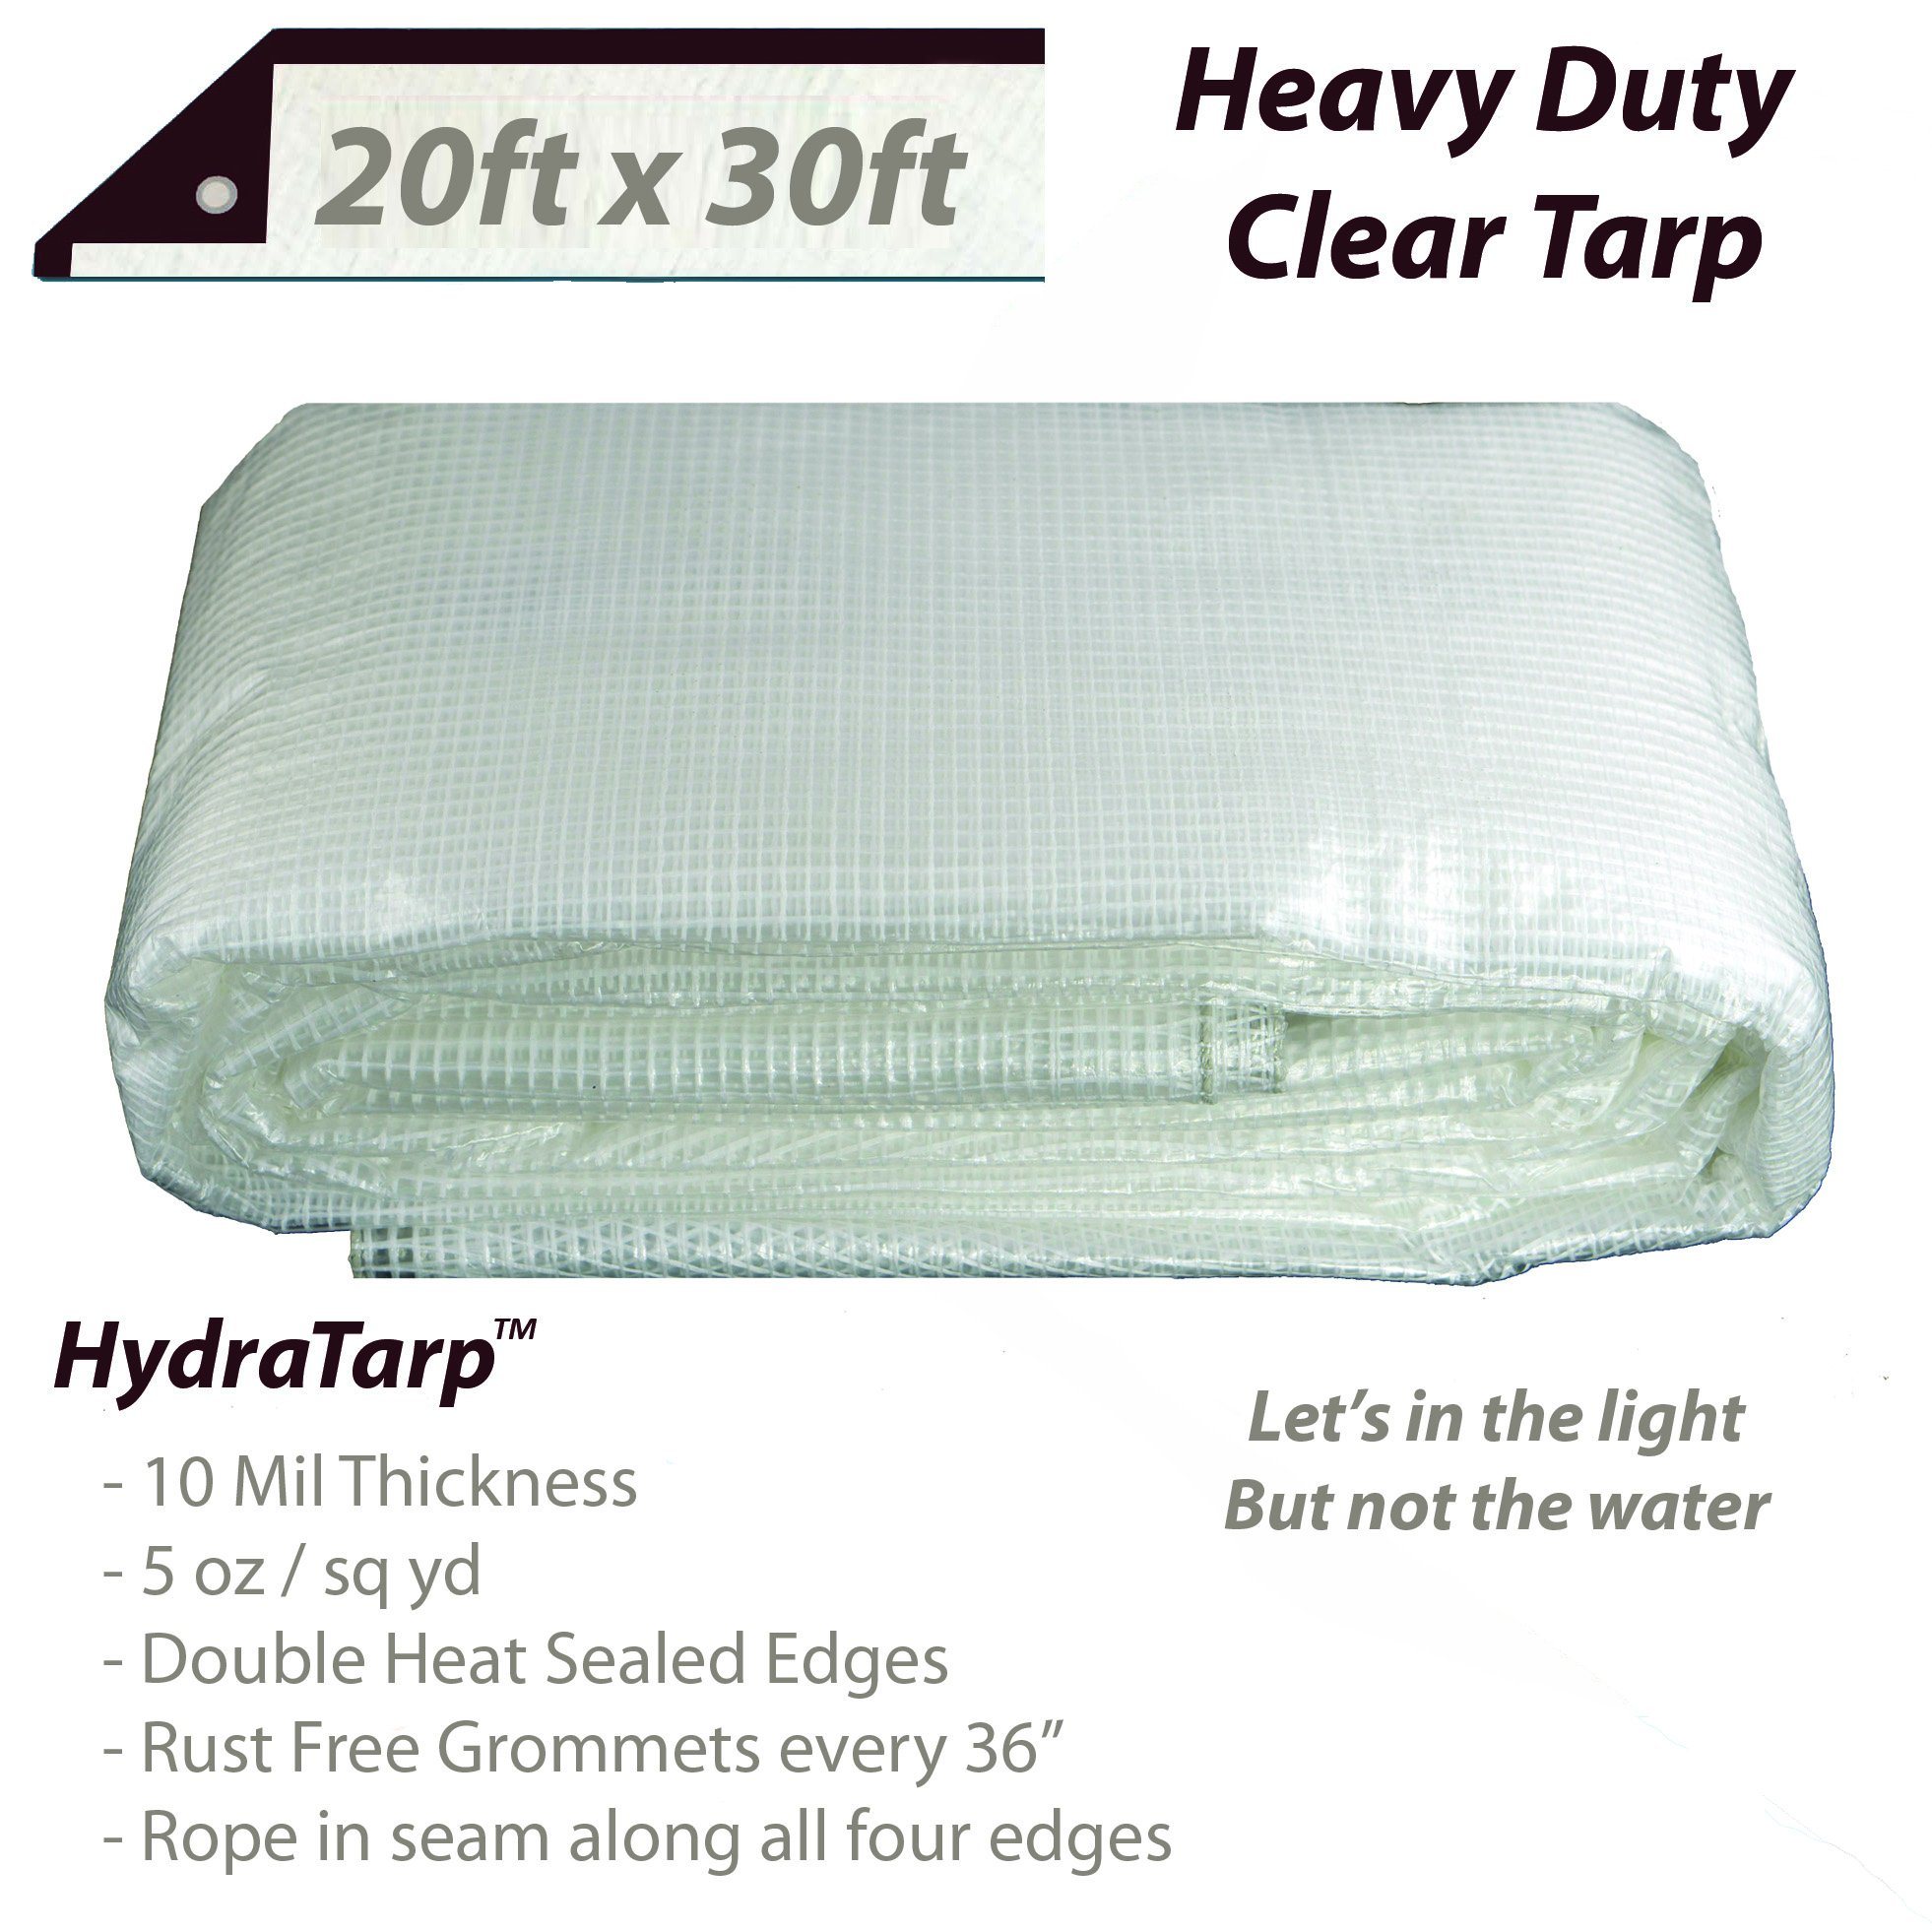 Heavy Duty Clear Greenhouse Tarp - 20ft x 30ft - Premium Quality 10 mil with 3x3 Mesh Weave for Added Strength - UV Coated Protection for Outdoor Camping RV Truck and Trailers